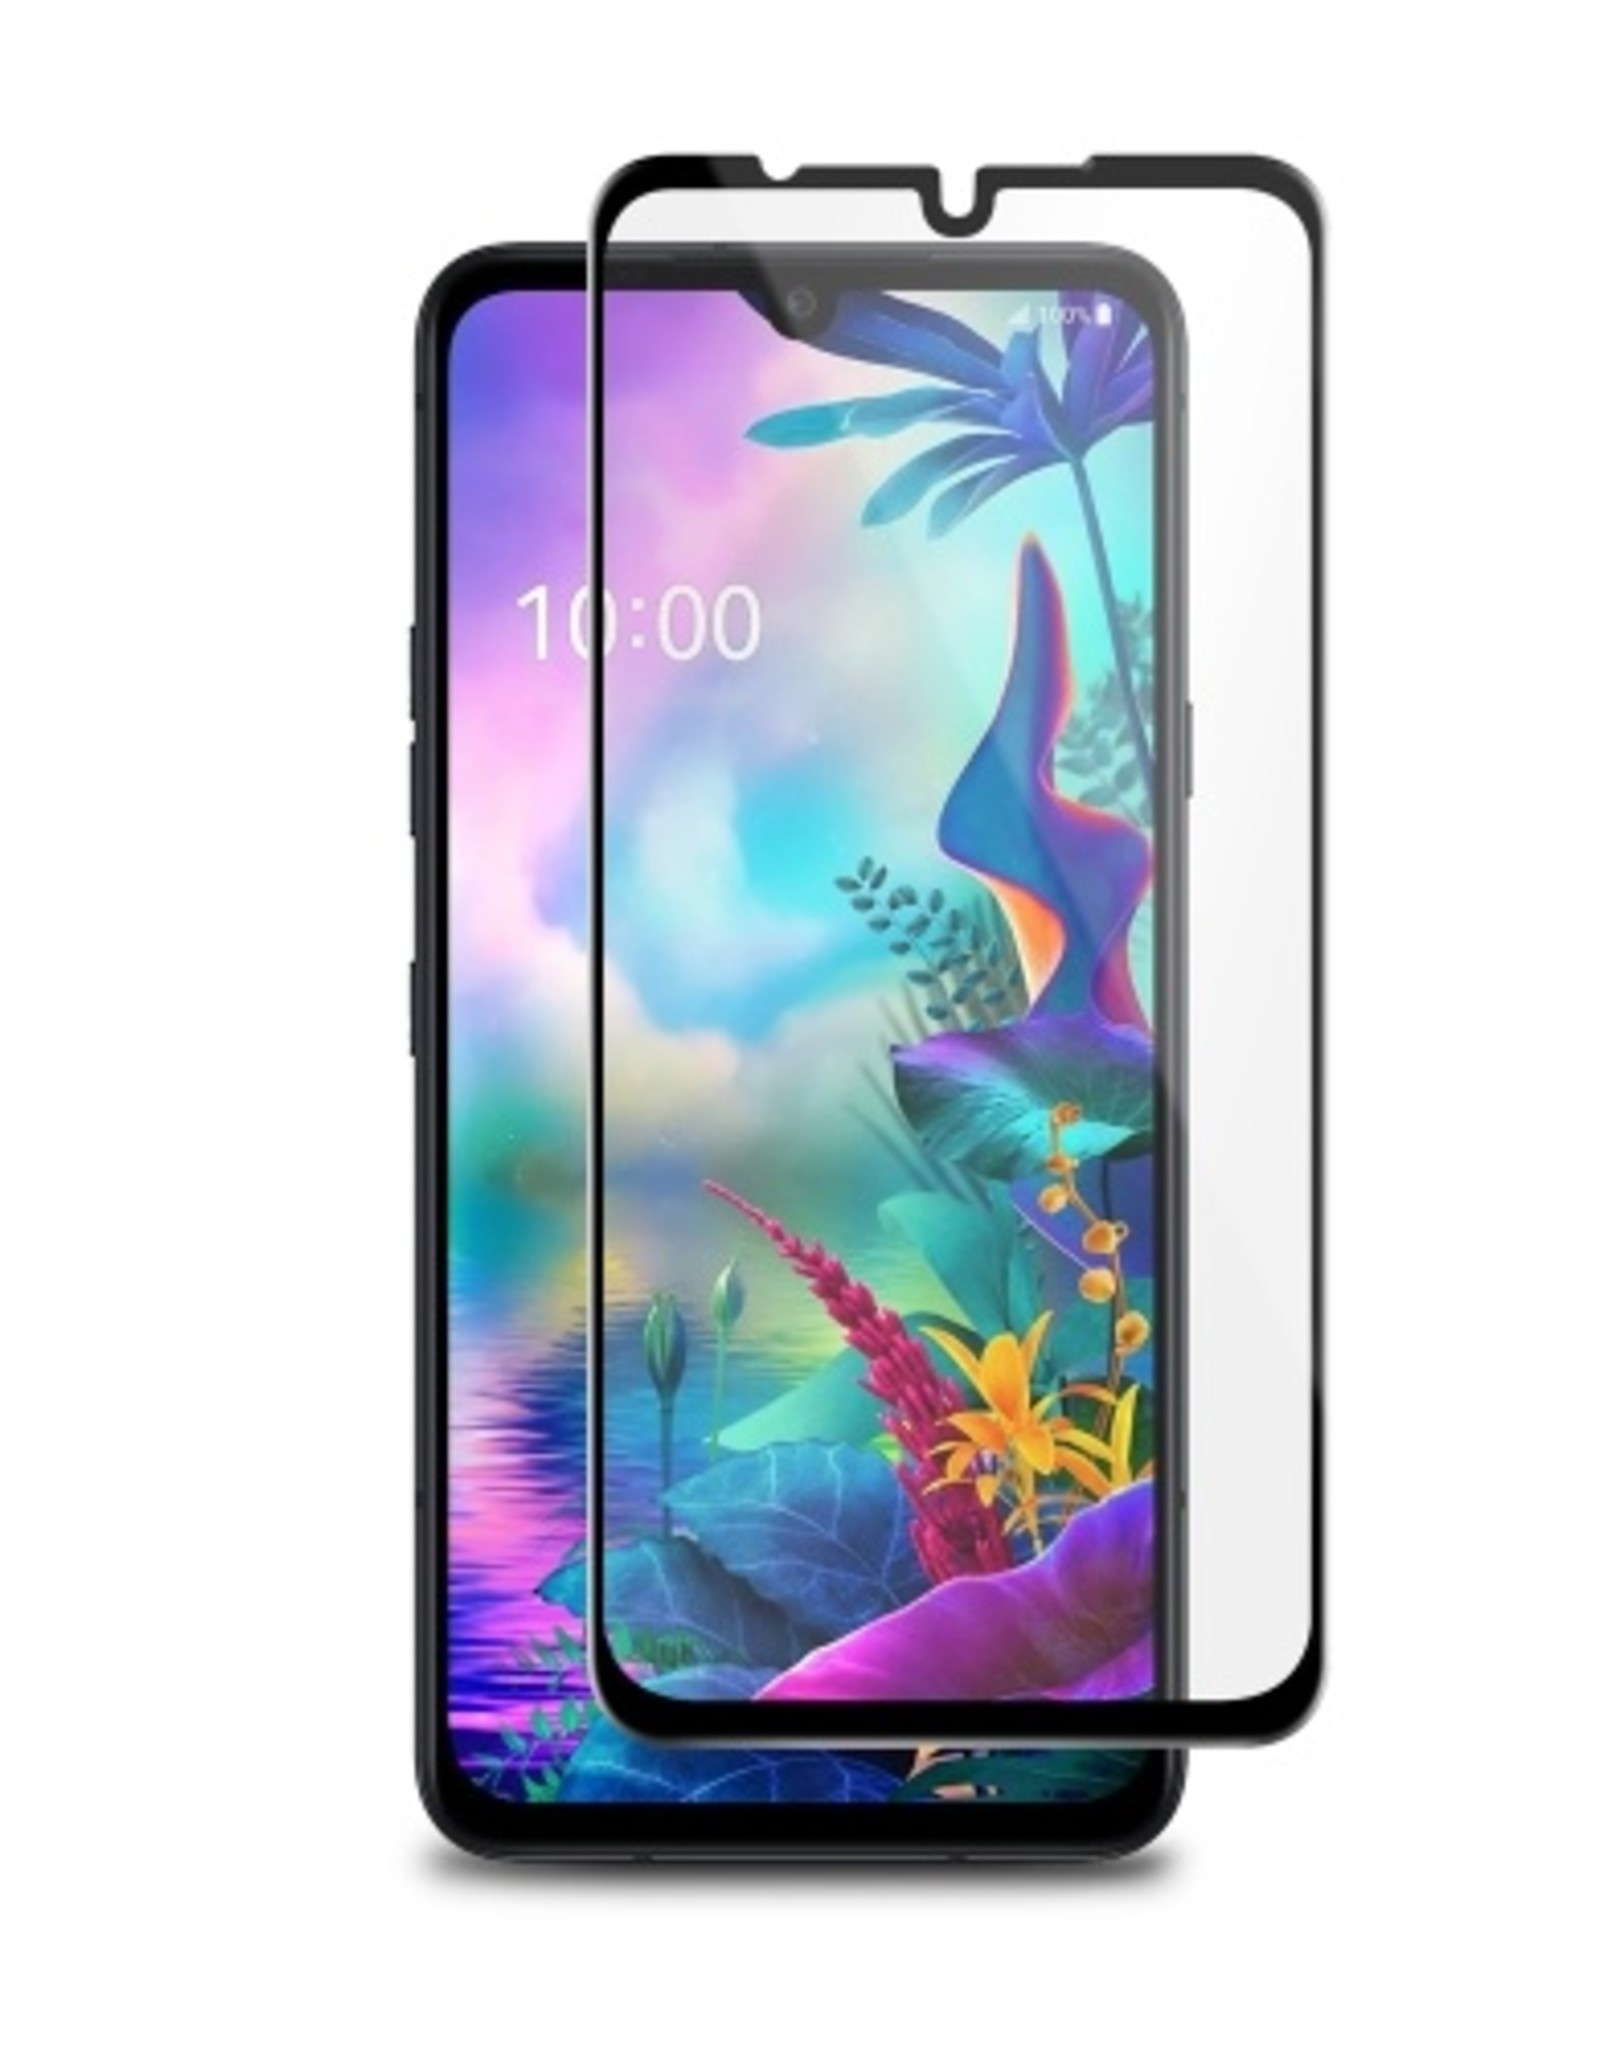 Blu Element Blu Element - Tempered Glass Screen Protector for LG G8X ThinQ 118-2200